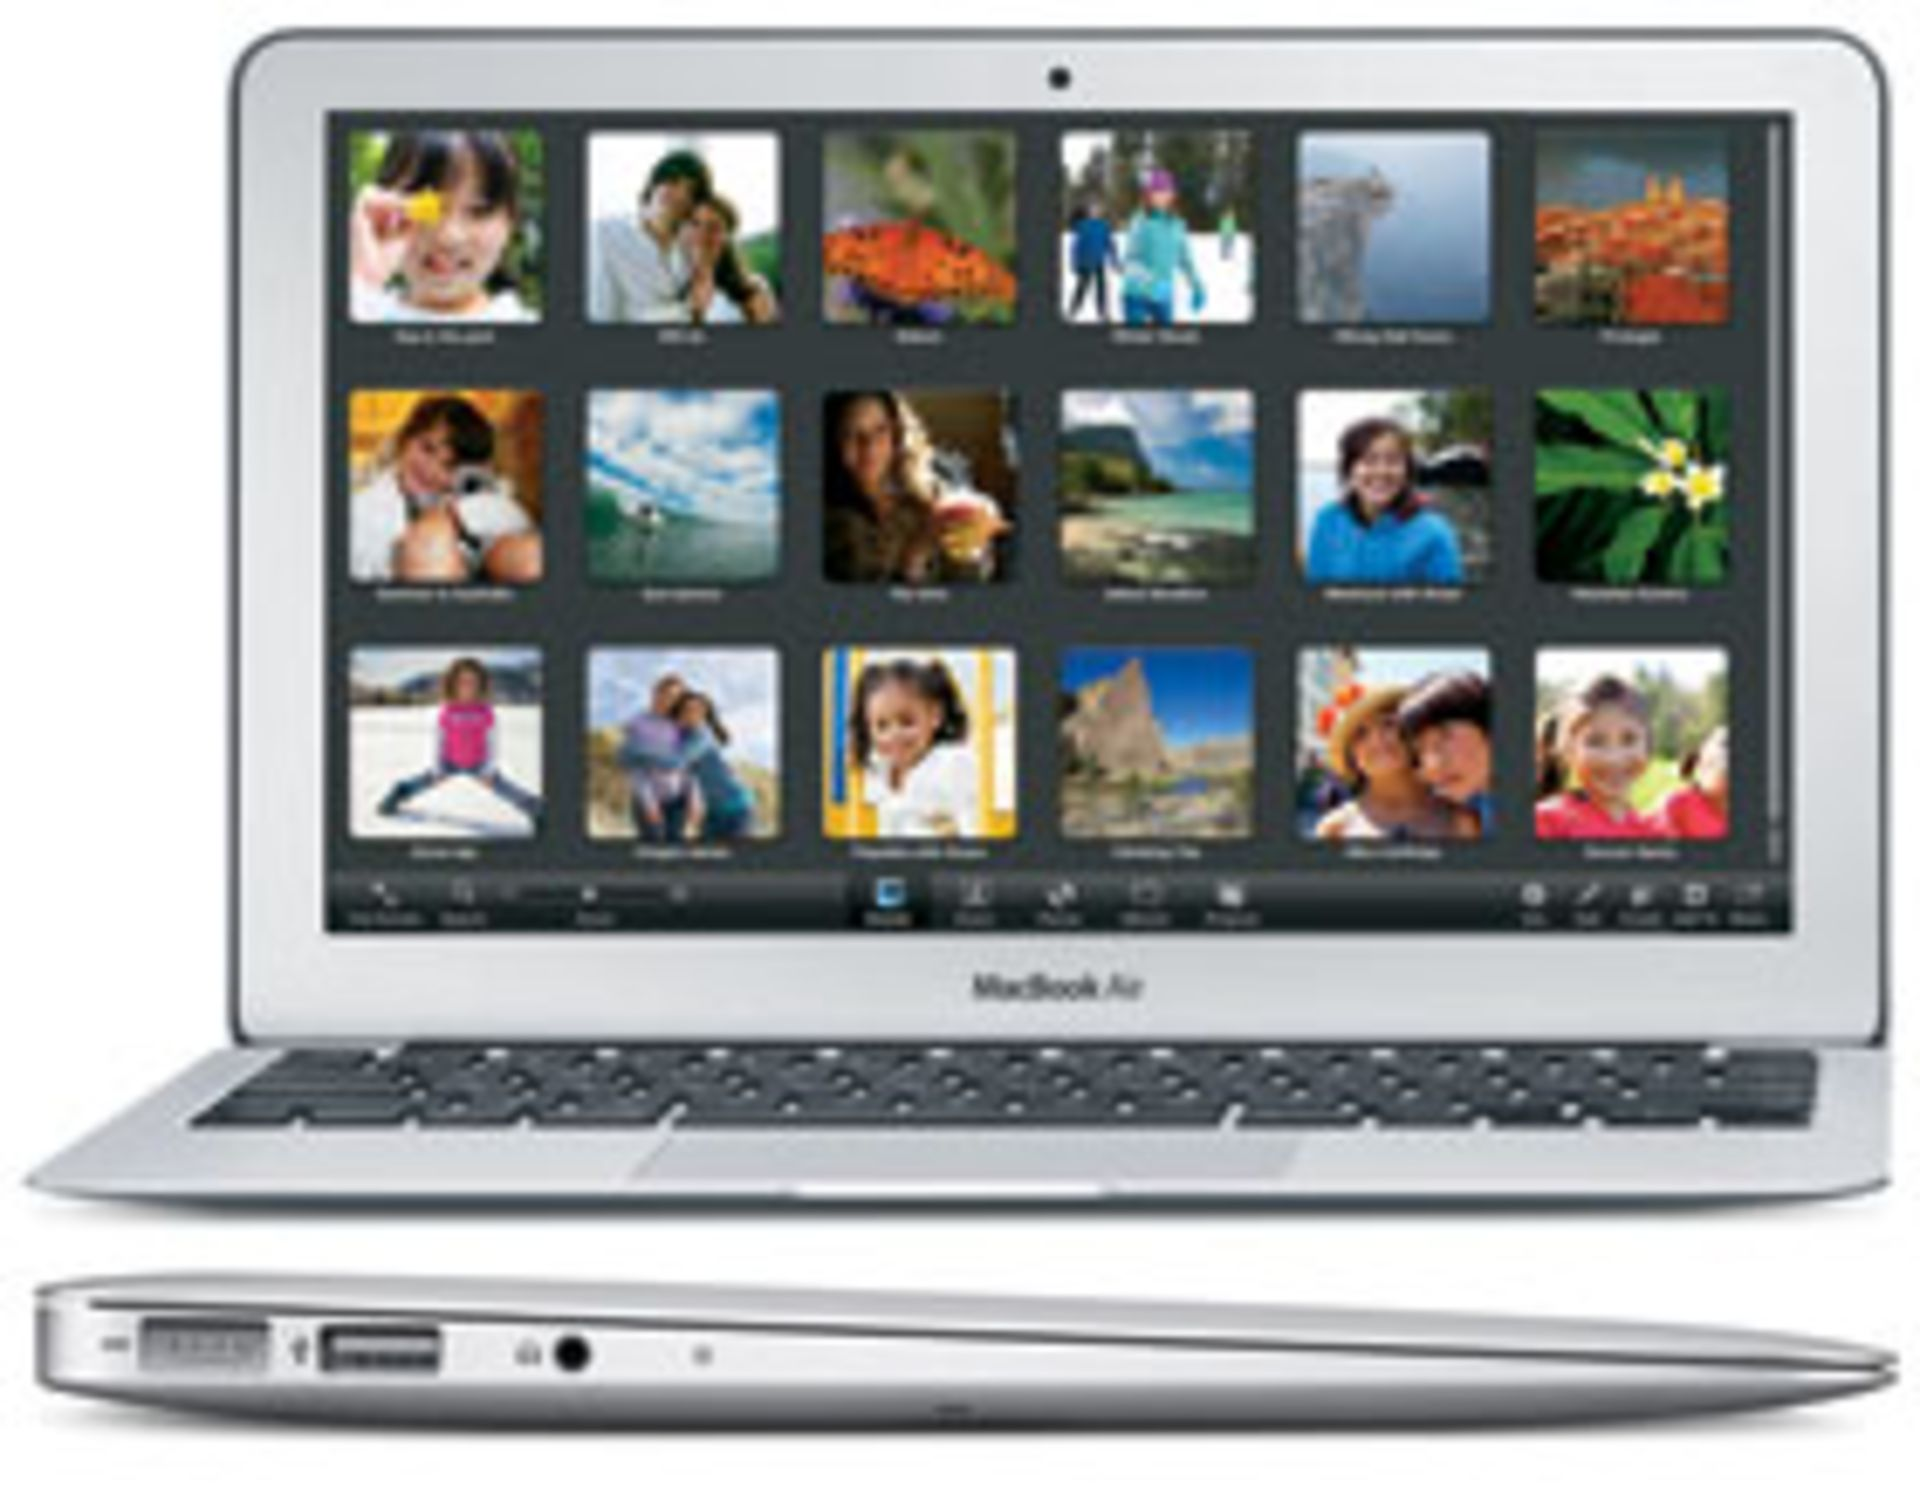 Lot 60033 - V Grade B Macbook Air 11.6 Inch Core 2 Duo - 64GB SSD - A1370 - Available Approx 7 Working Days